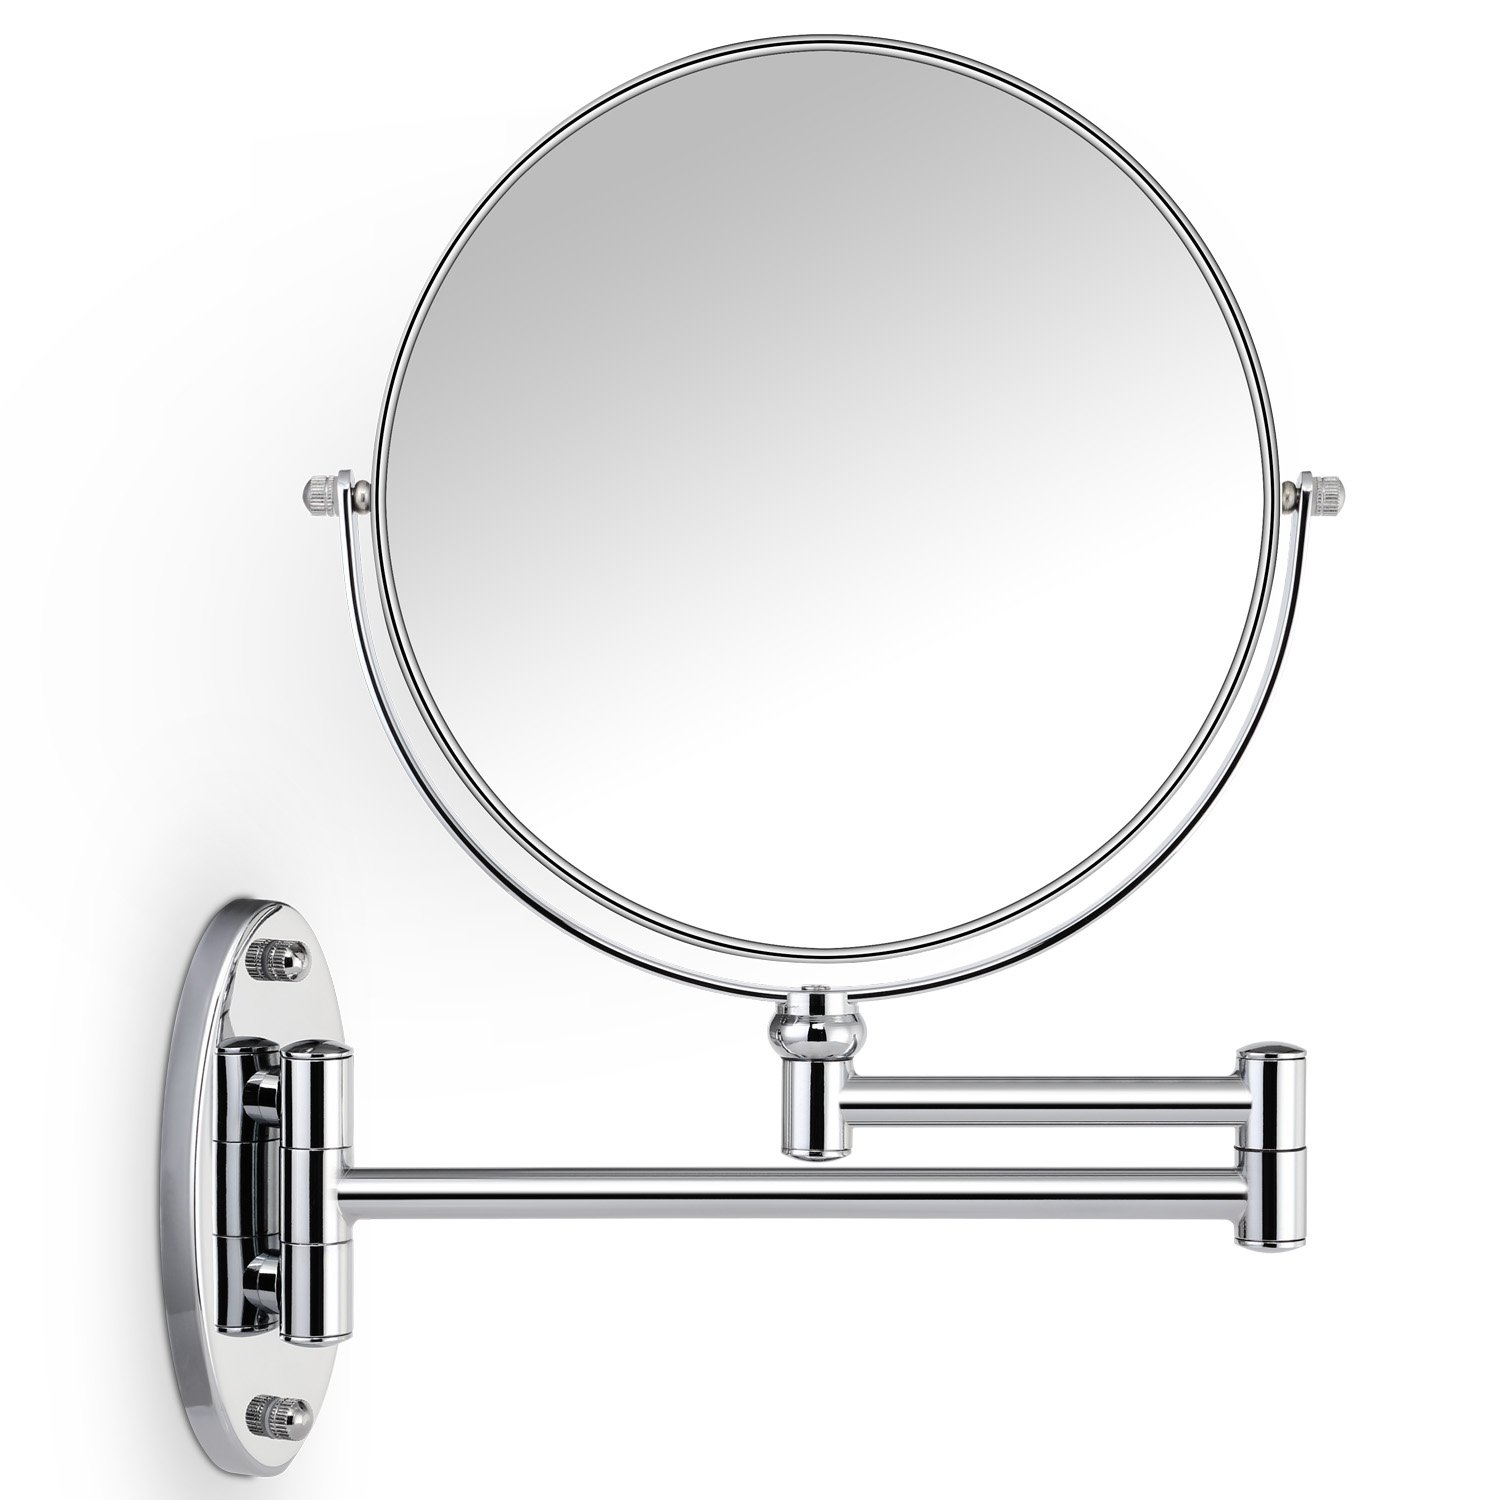 Miusco 7X Magnifying Two Sided Vanity Makeup Mirror, 8 inch, Wall Mount, Round, Chrome C3079